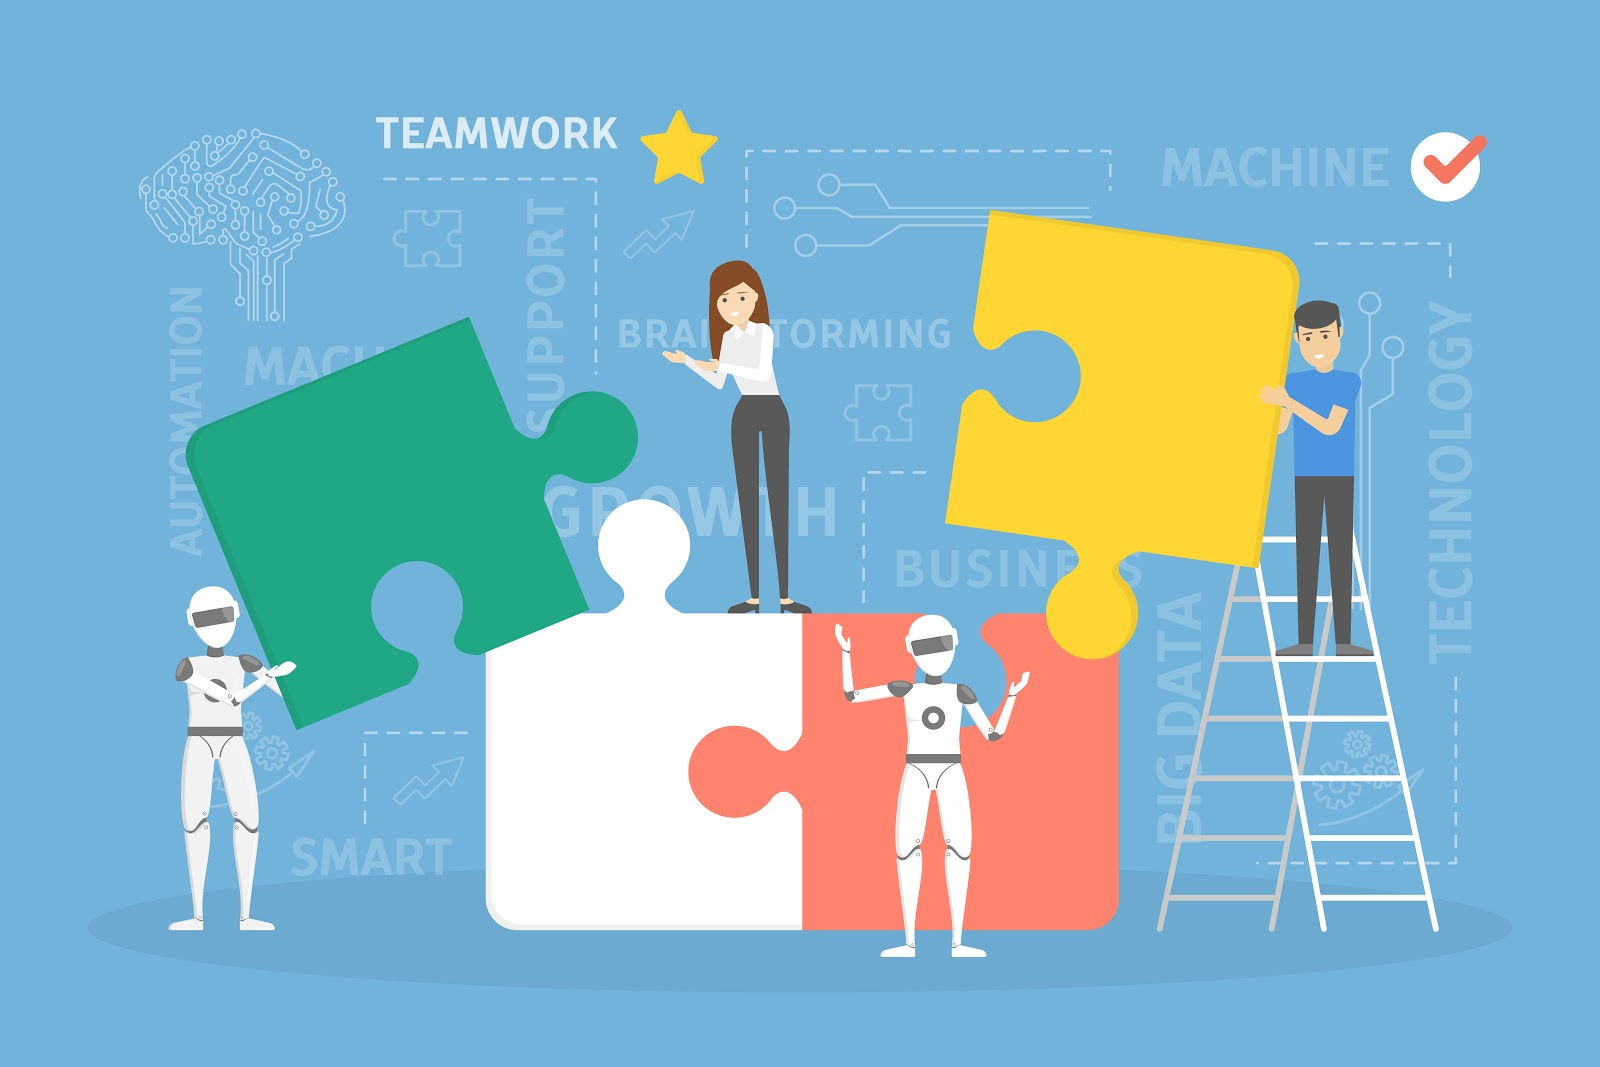 Graphic showing teamwork of people and robots putting together some puzzle pieces